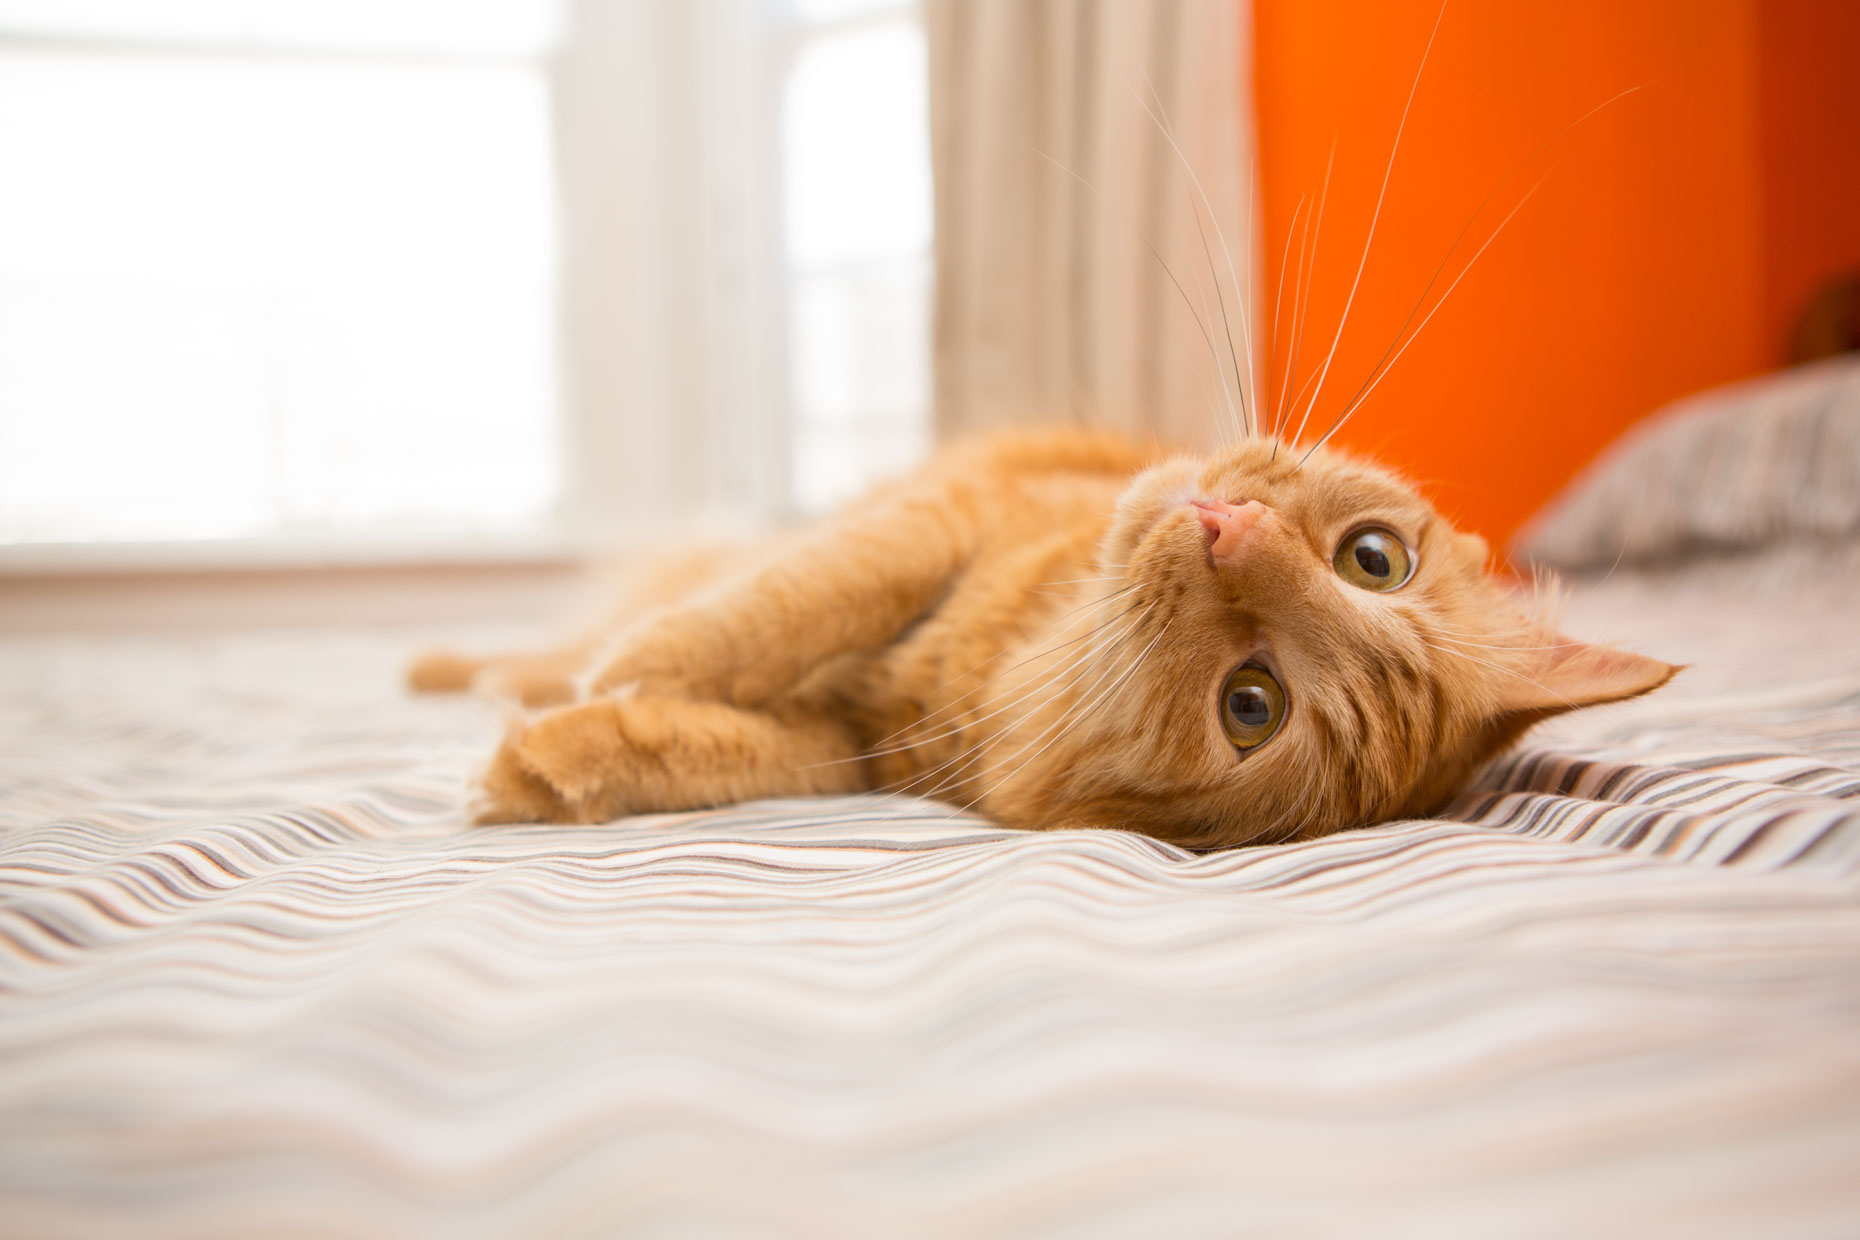 Pet Photography | Orange Cat Upside Down by Mark Rogers